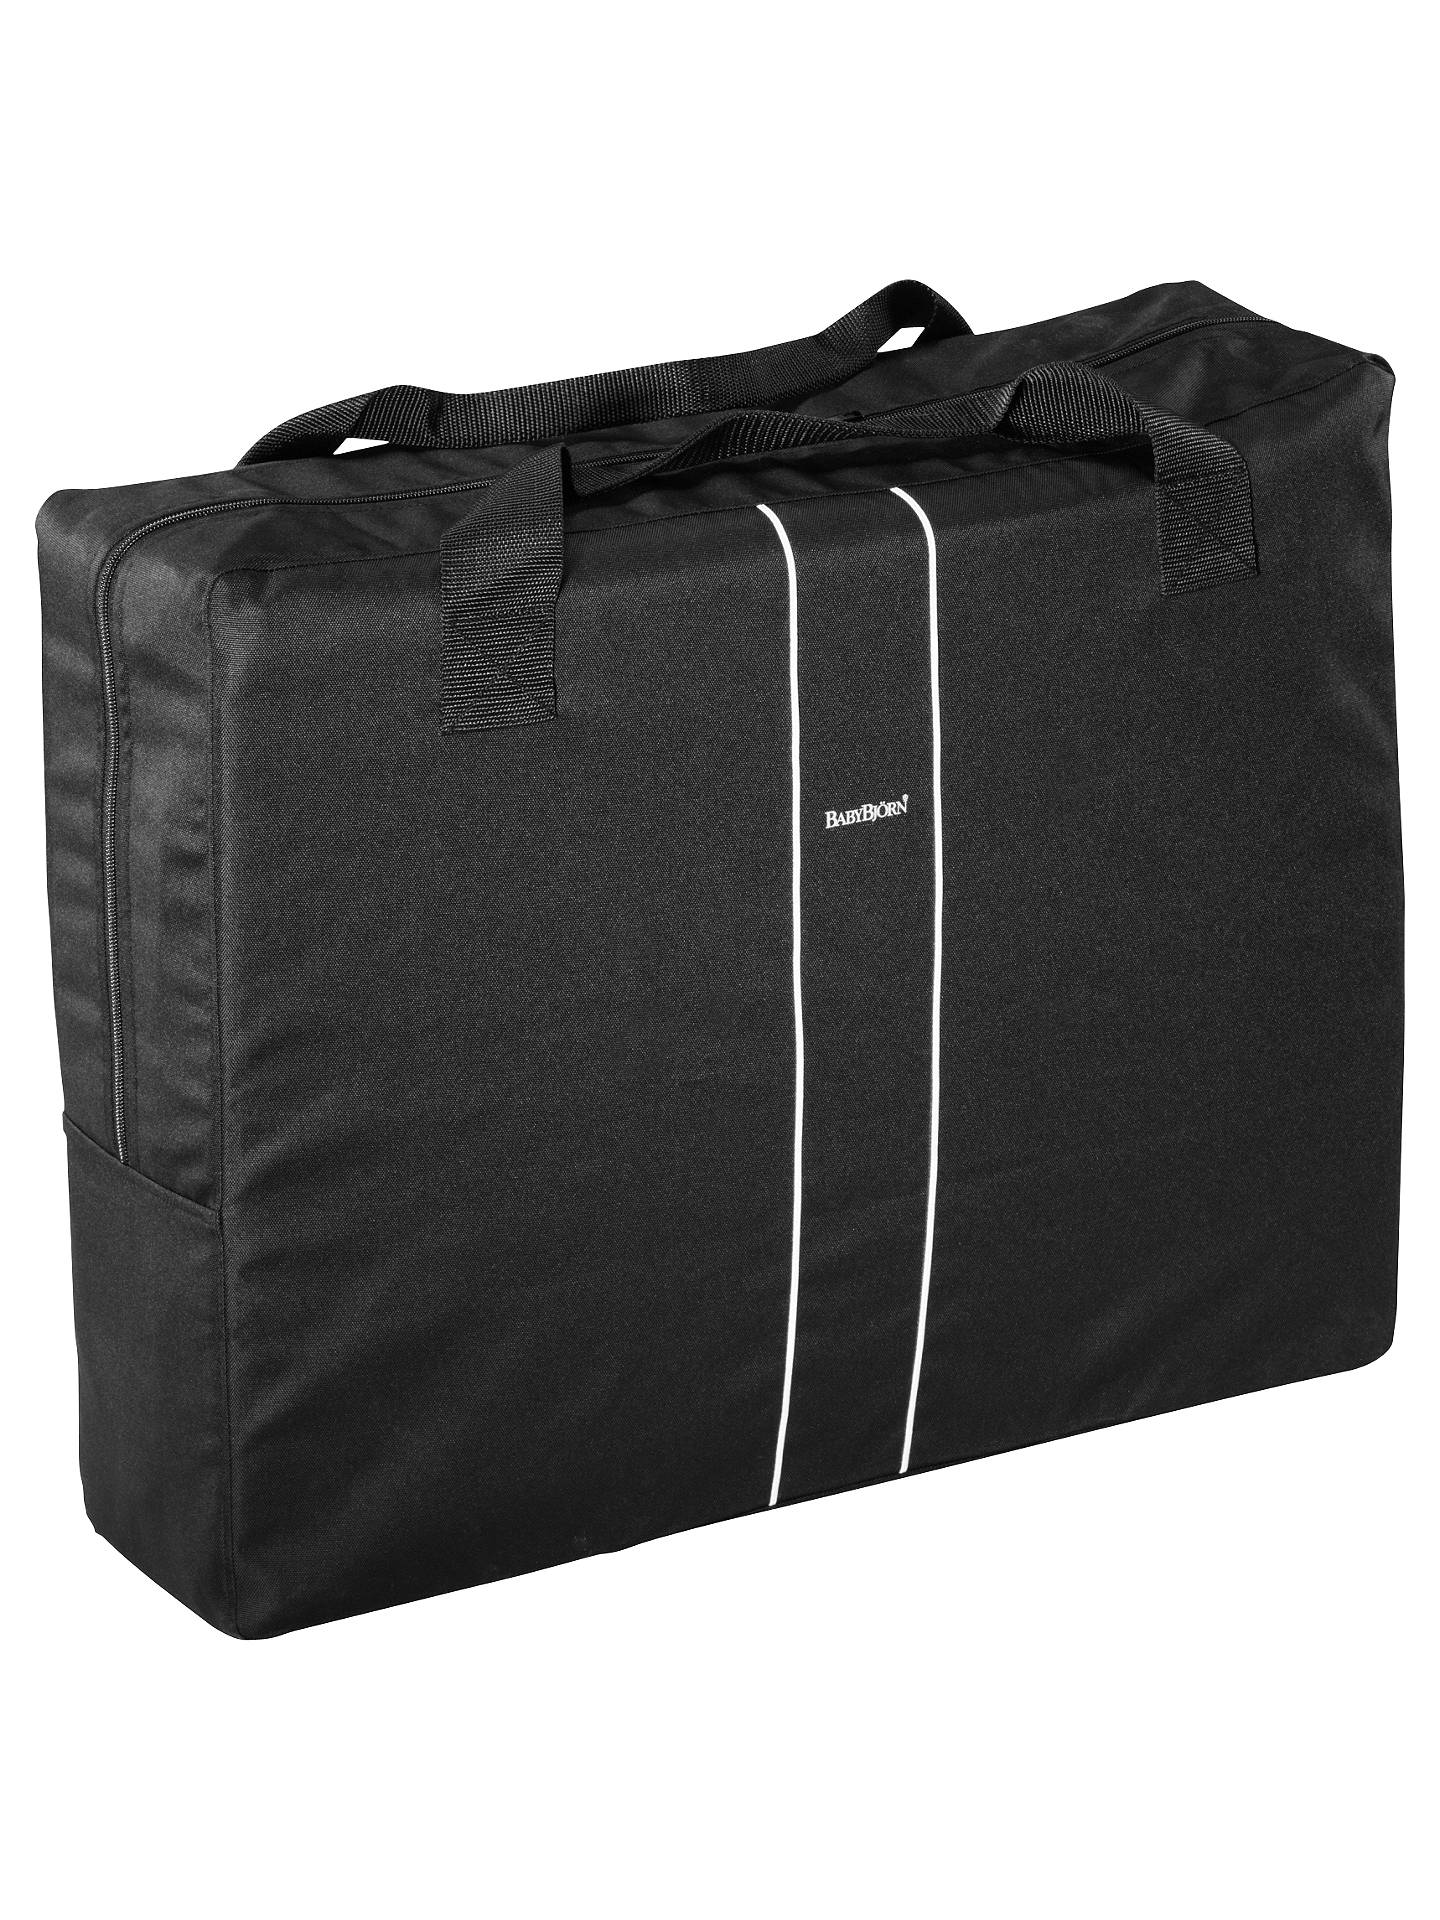 Buy BabyBjörn Travel Cot Light, Black Online at johnlewis.com